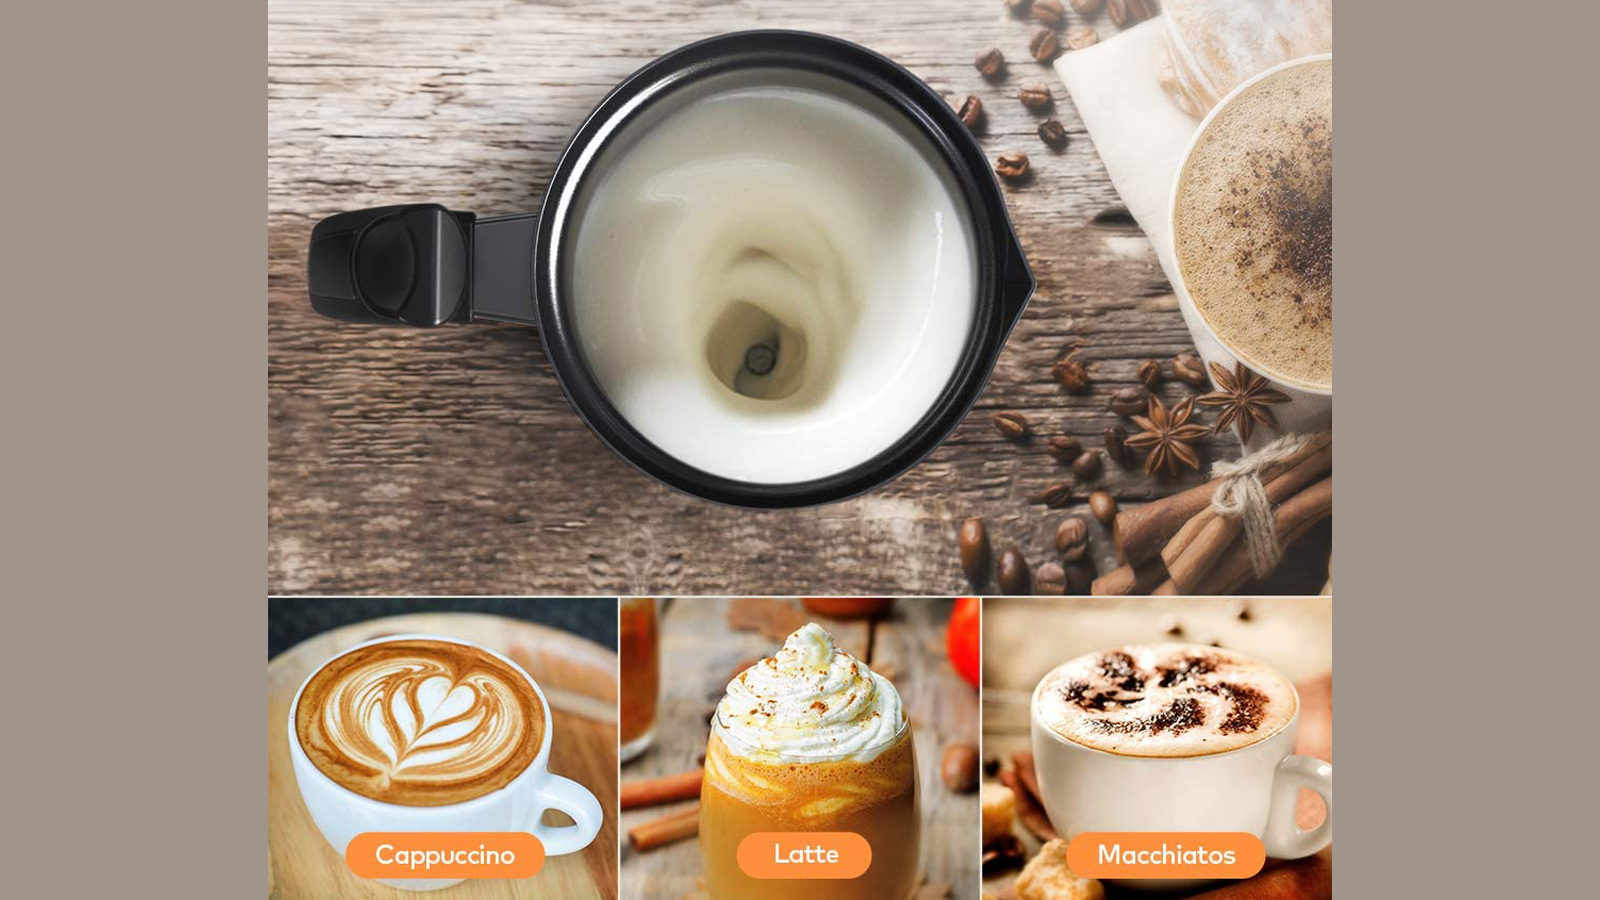 Get a Milk Frother and Make Your Favorite Foamy Coffee Drinks at Home